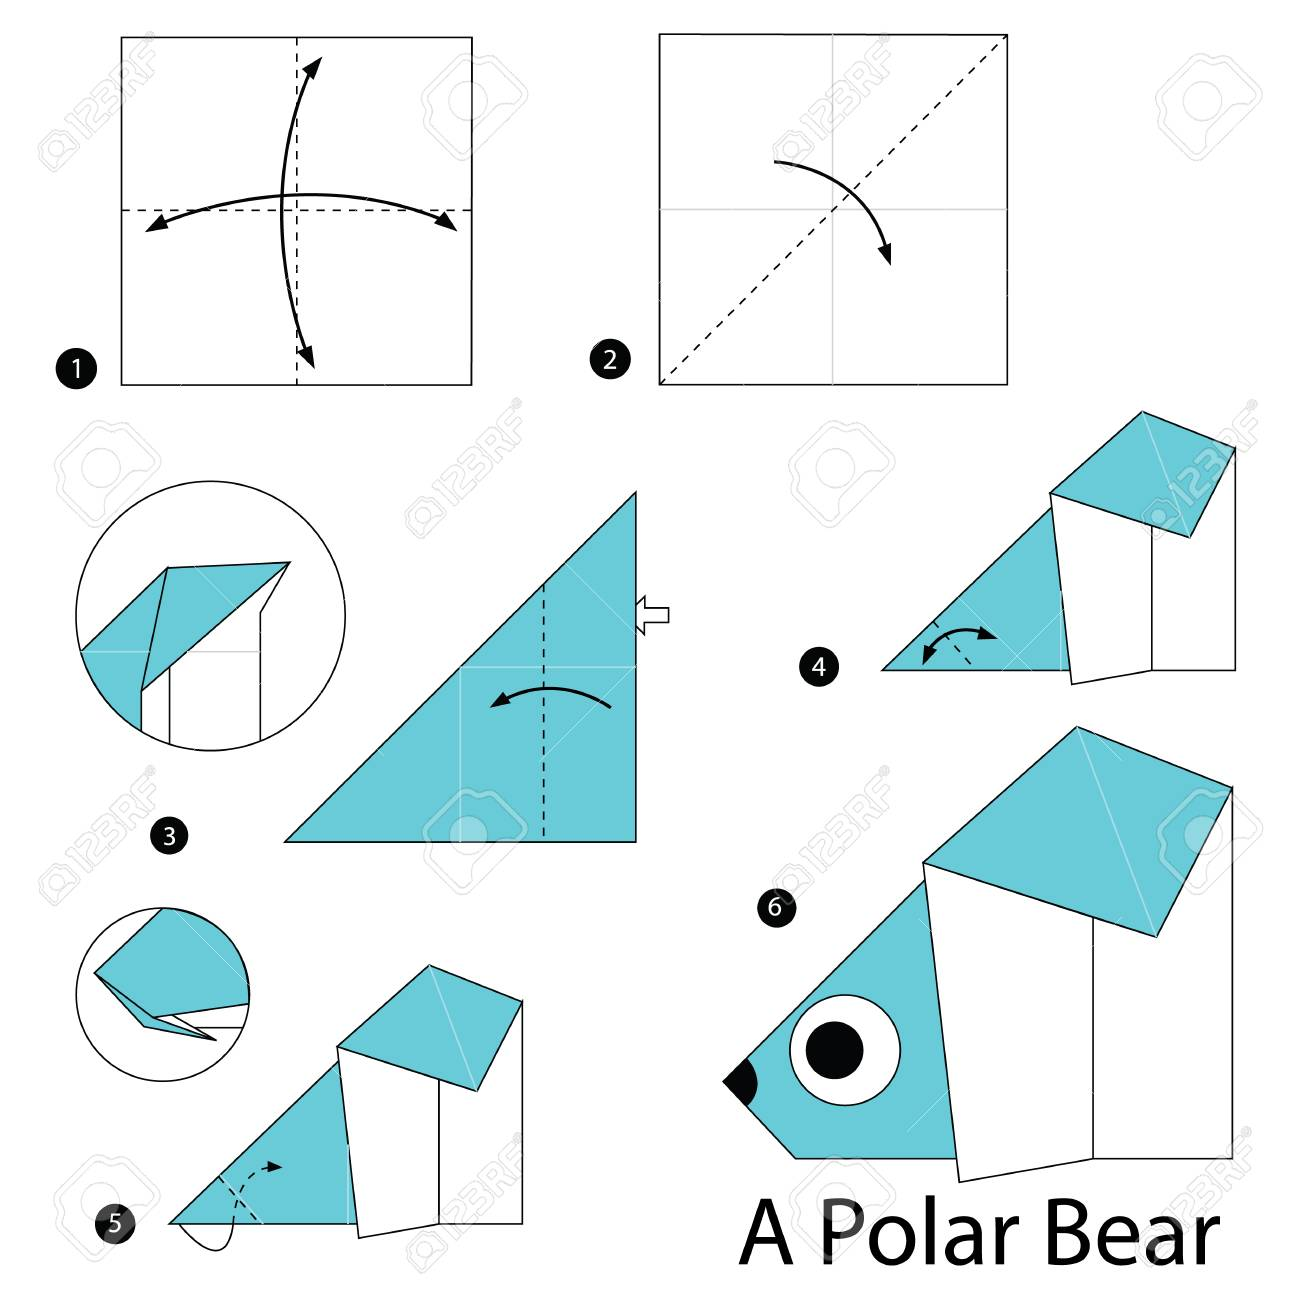 Phenomenal Step By Step Instructions How To Make Origami A Polar Bear Royalty Wiring 101 Olytiaxxcnl